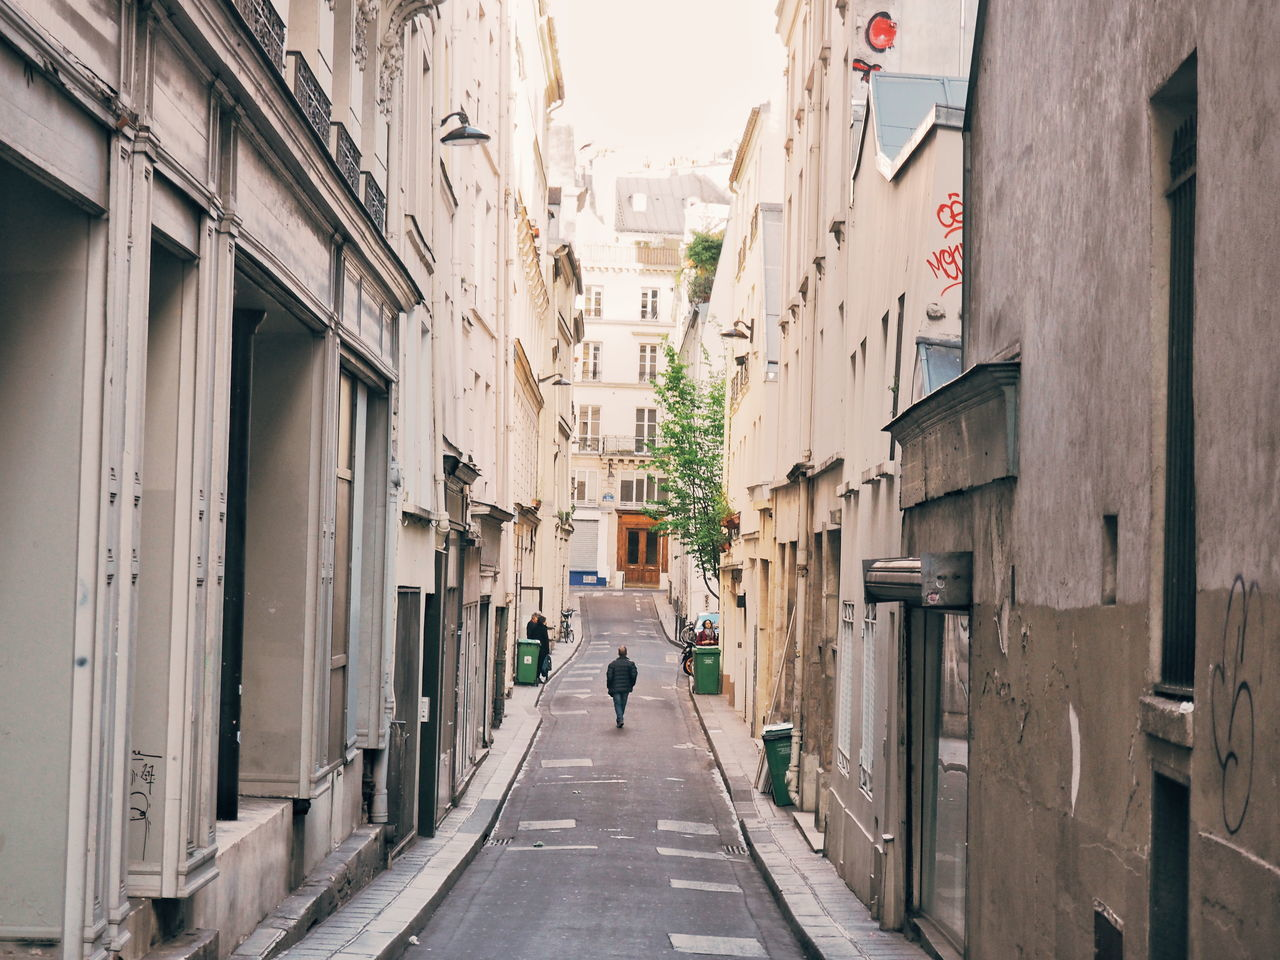 Architecture Built Structure The Way Forward Walking Day Building Exterior Men Real People Full Length City Outdoors People Adult Adults Only Walking Around Walking Around The City  Lonely Alleyway Quiet Moments Quiet Moment, Busy Place Paris Neighborhood Map